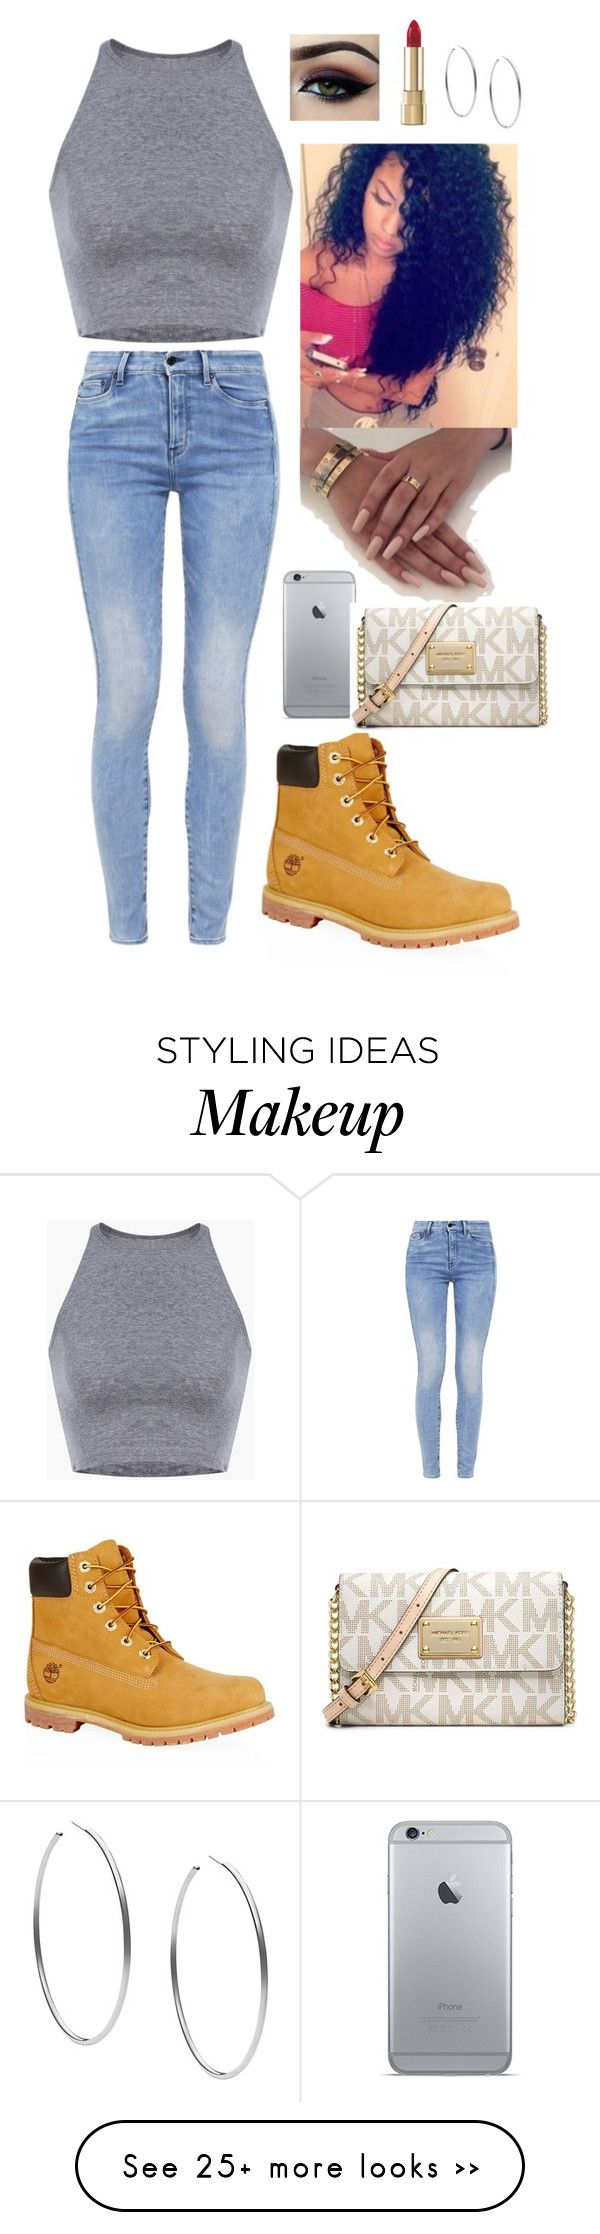 """Football game"" by brooklyn-fashion1 on Polyvore featuring G-Star, Timberland, Ardell, Dolce&Gabbana and Michael Kors"